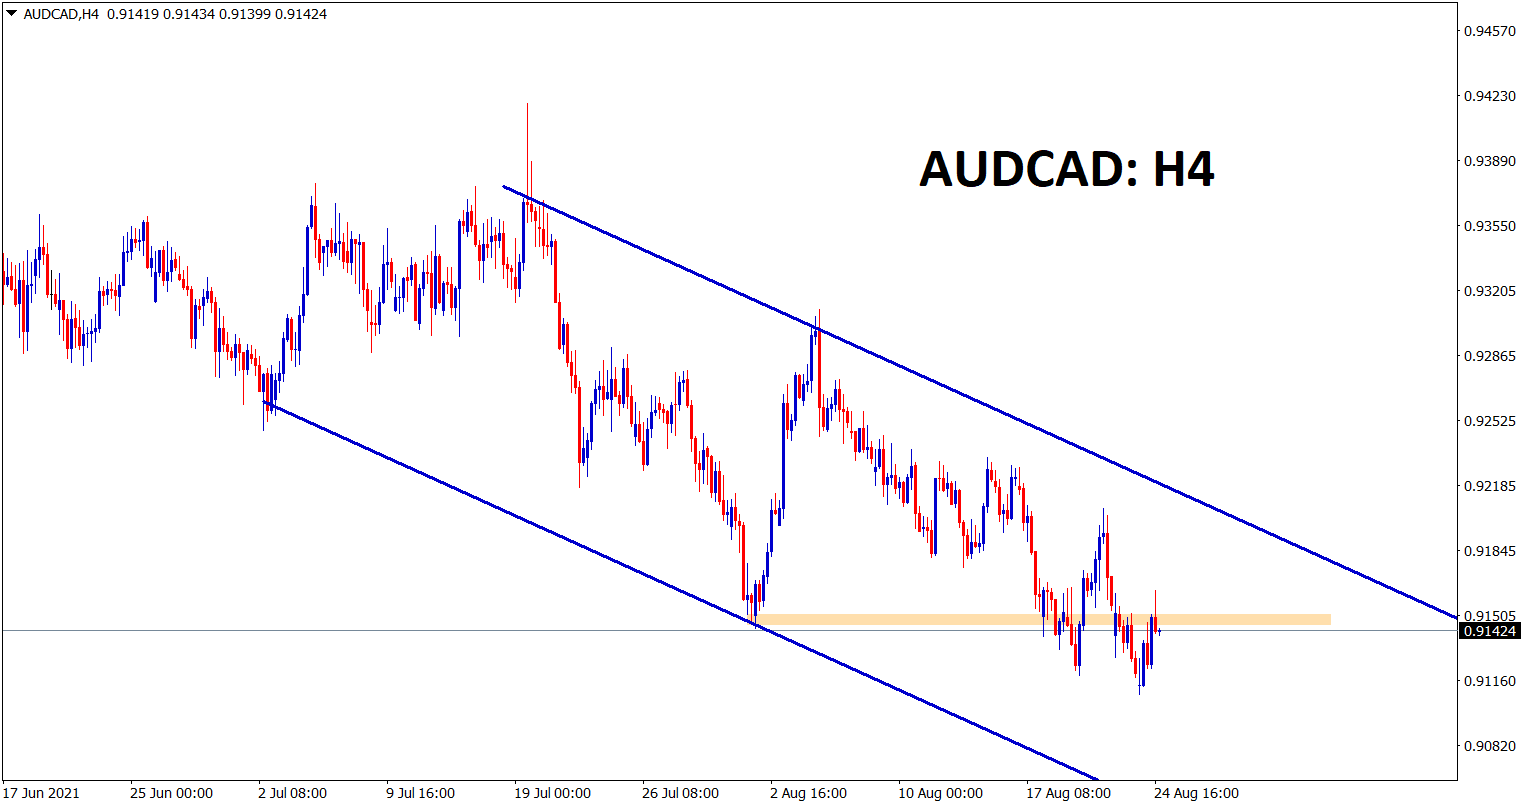 AUDCAD is consolidating at the bottom level of the descending channel